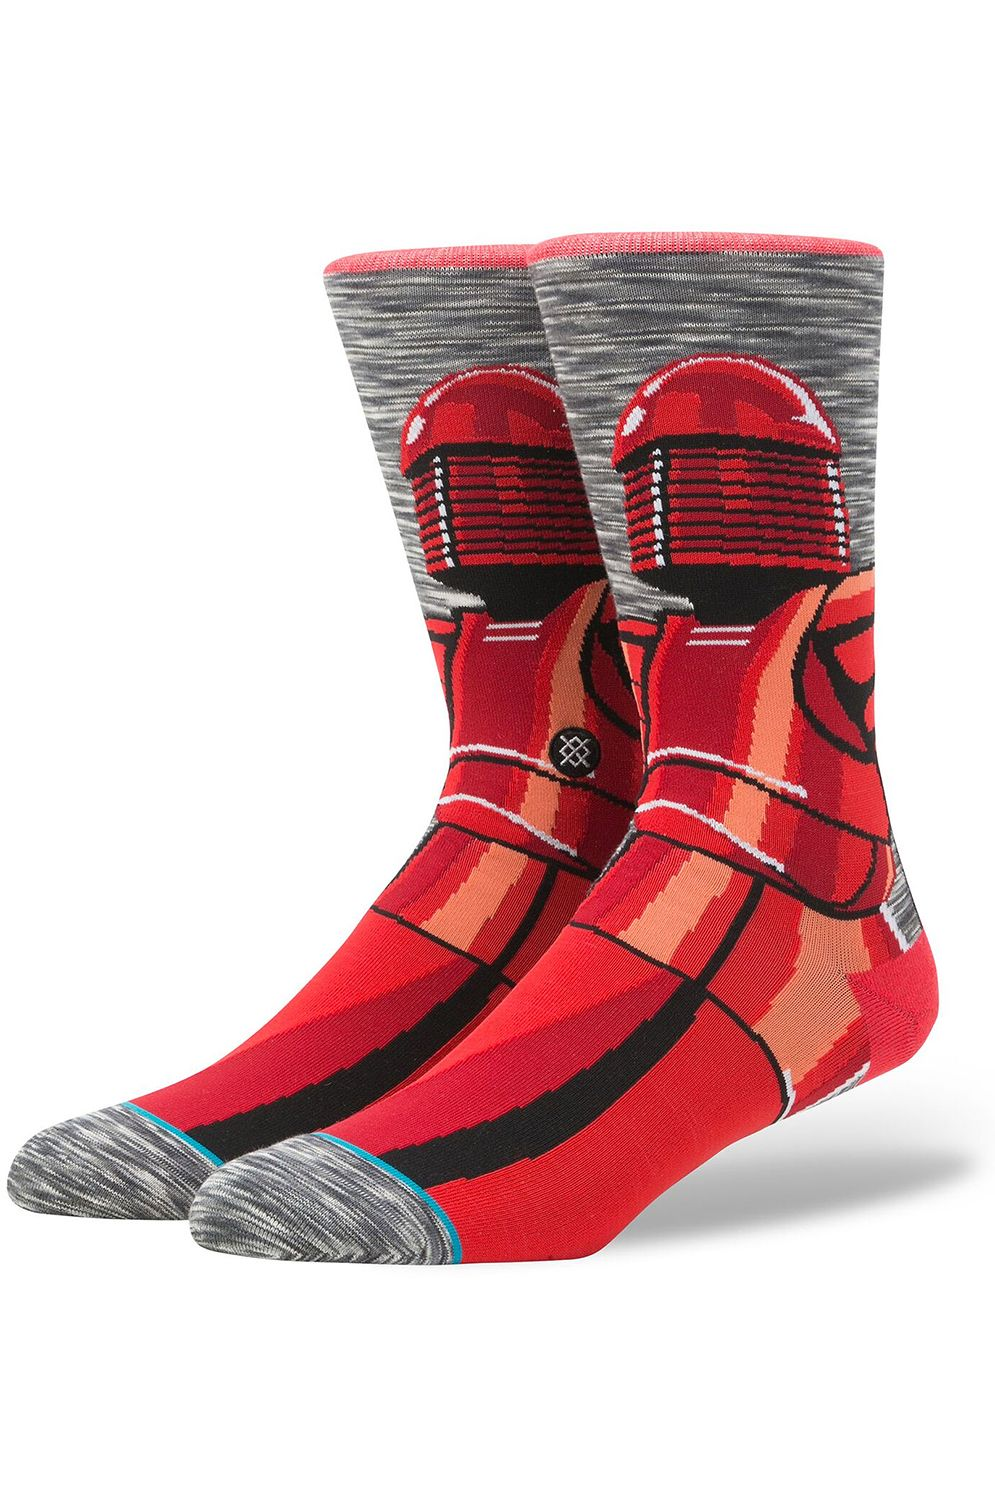 Stance Socks RED GUARD Grey